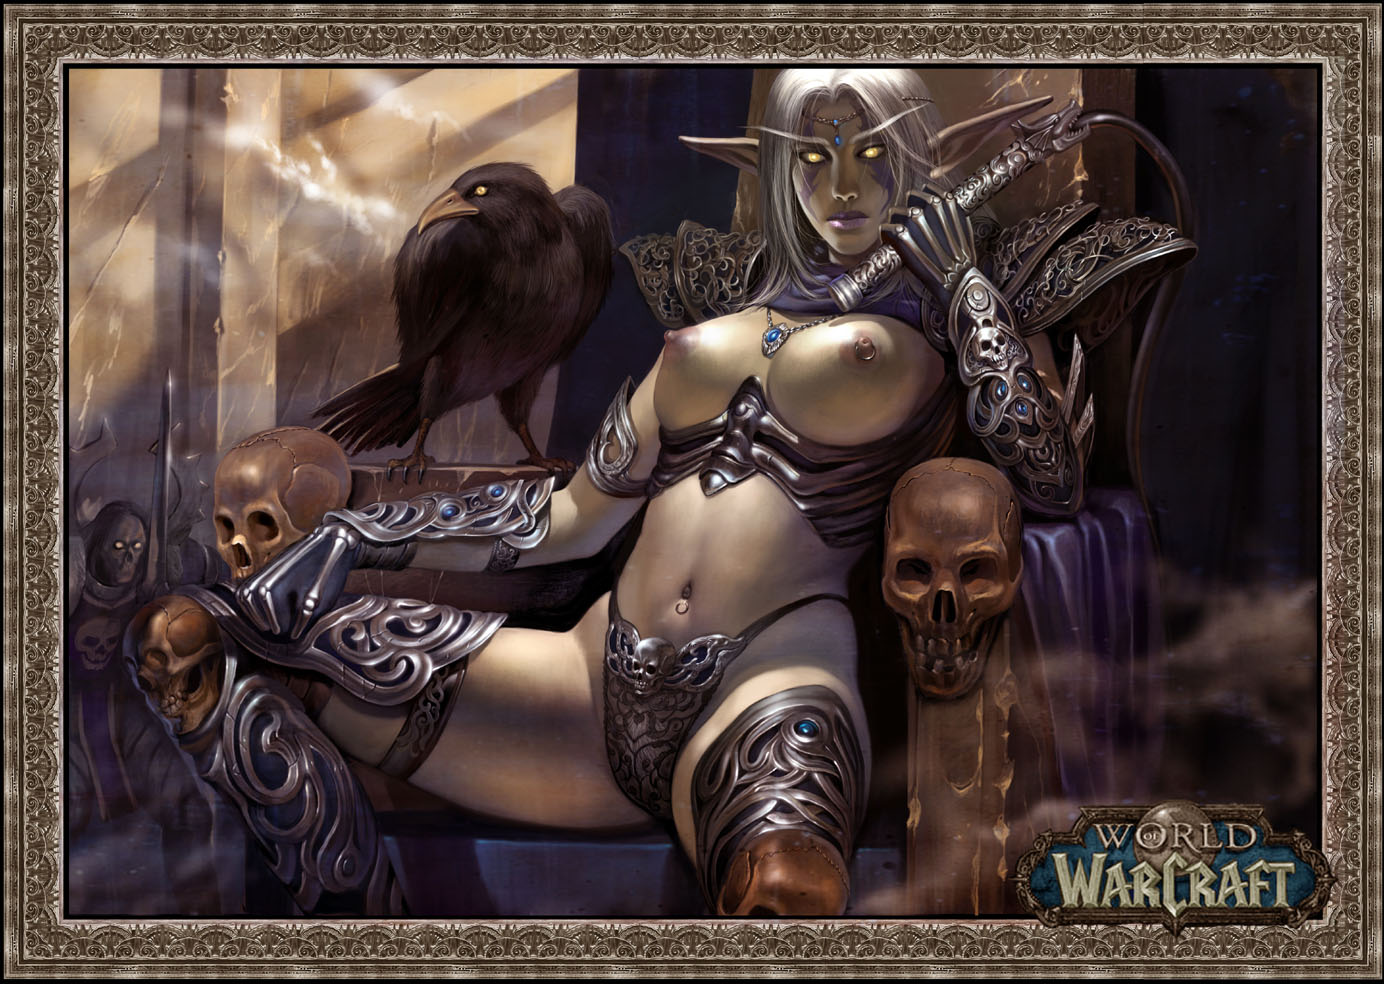 Warcraft erotic pic erotic download